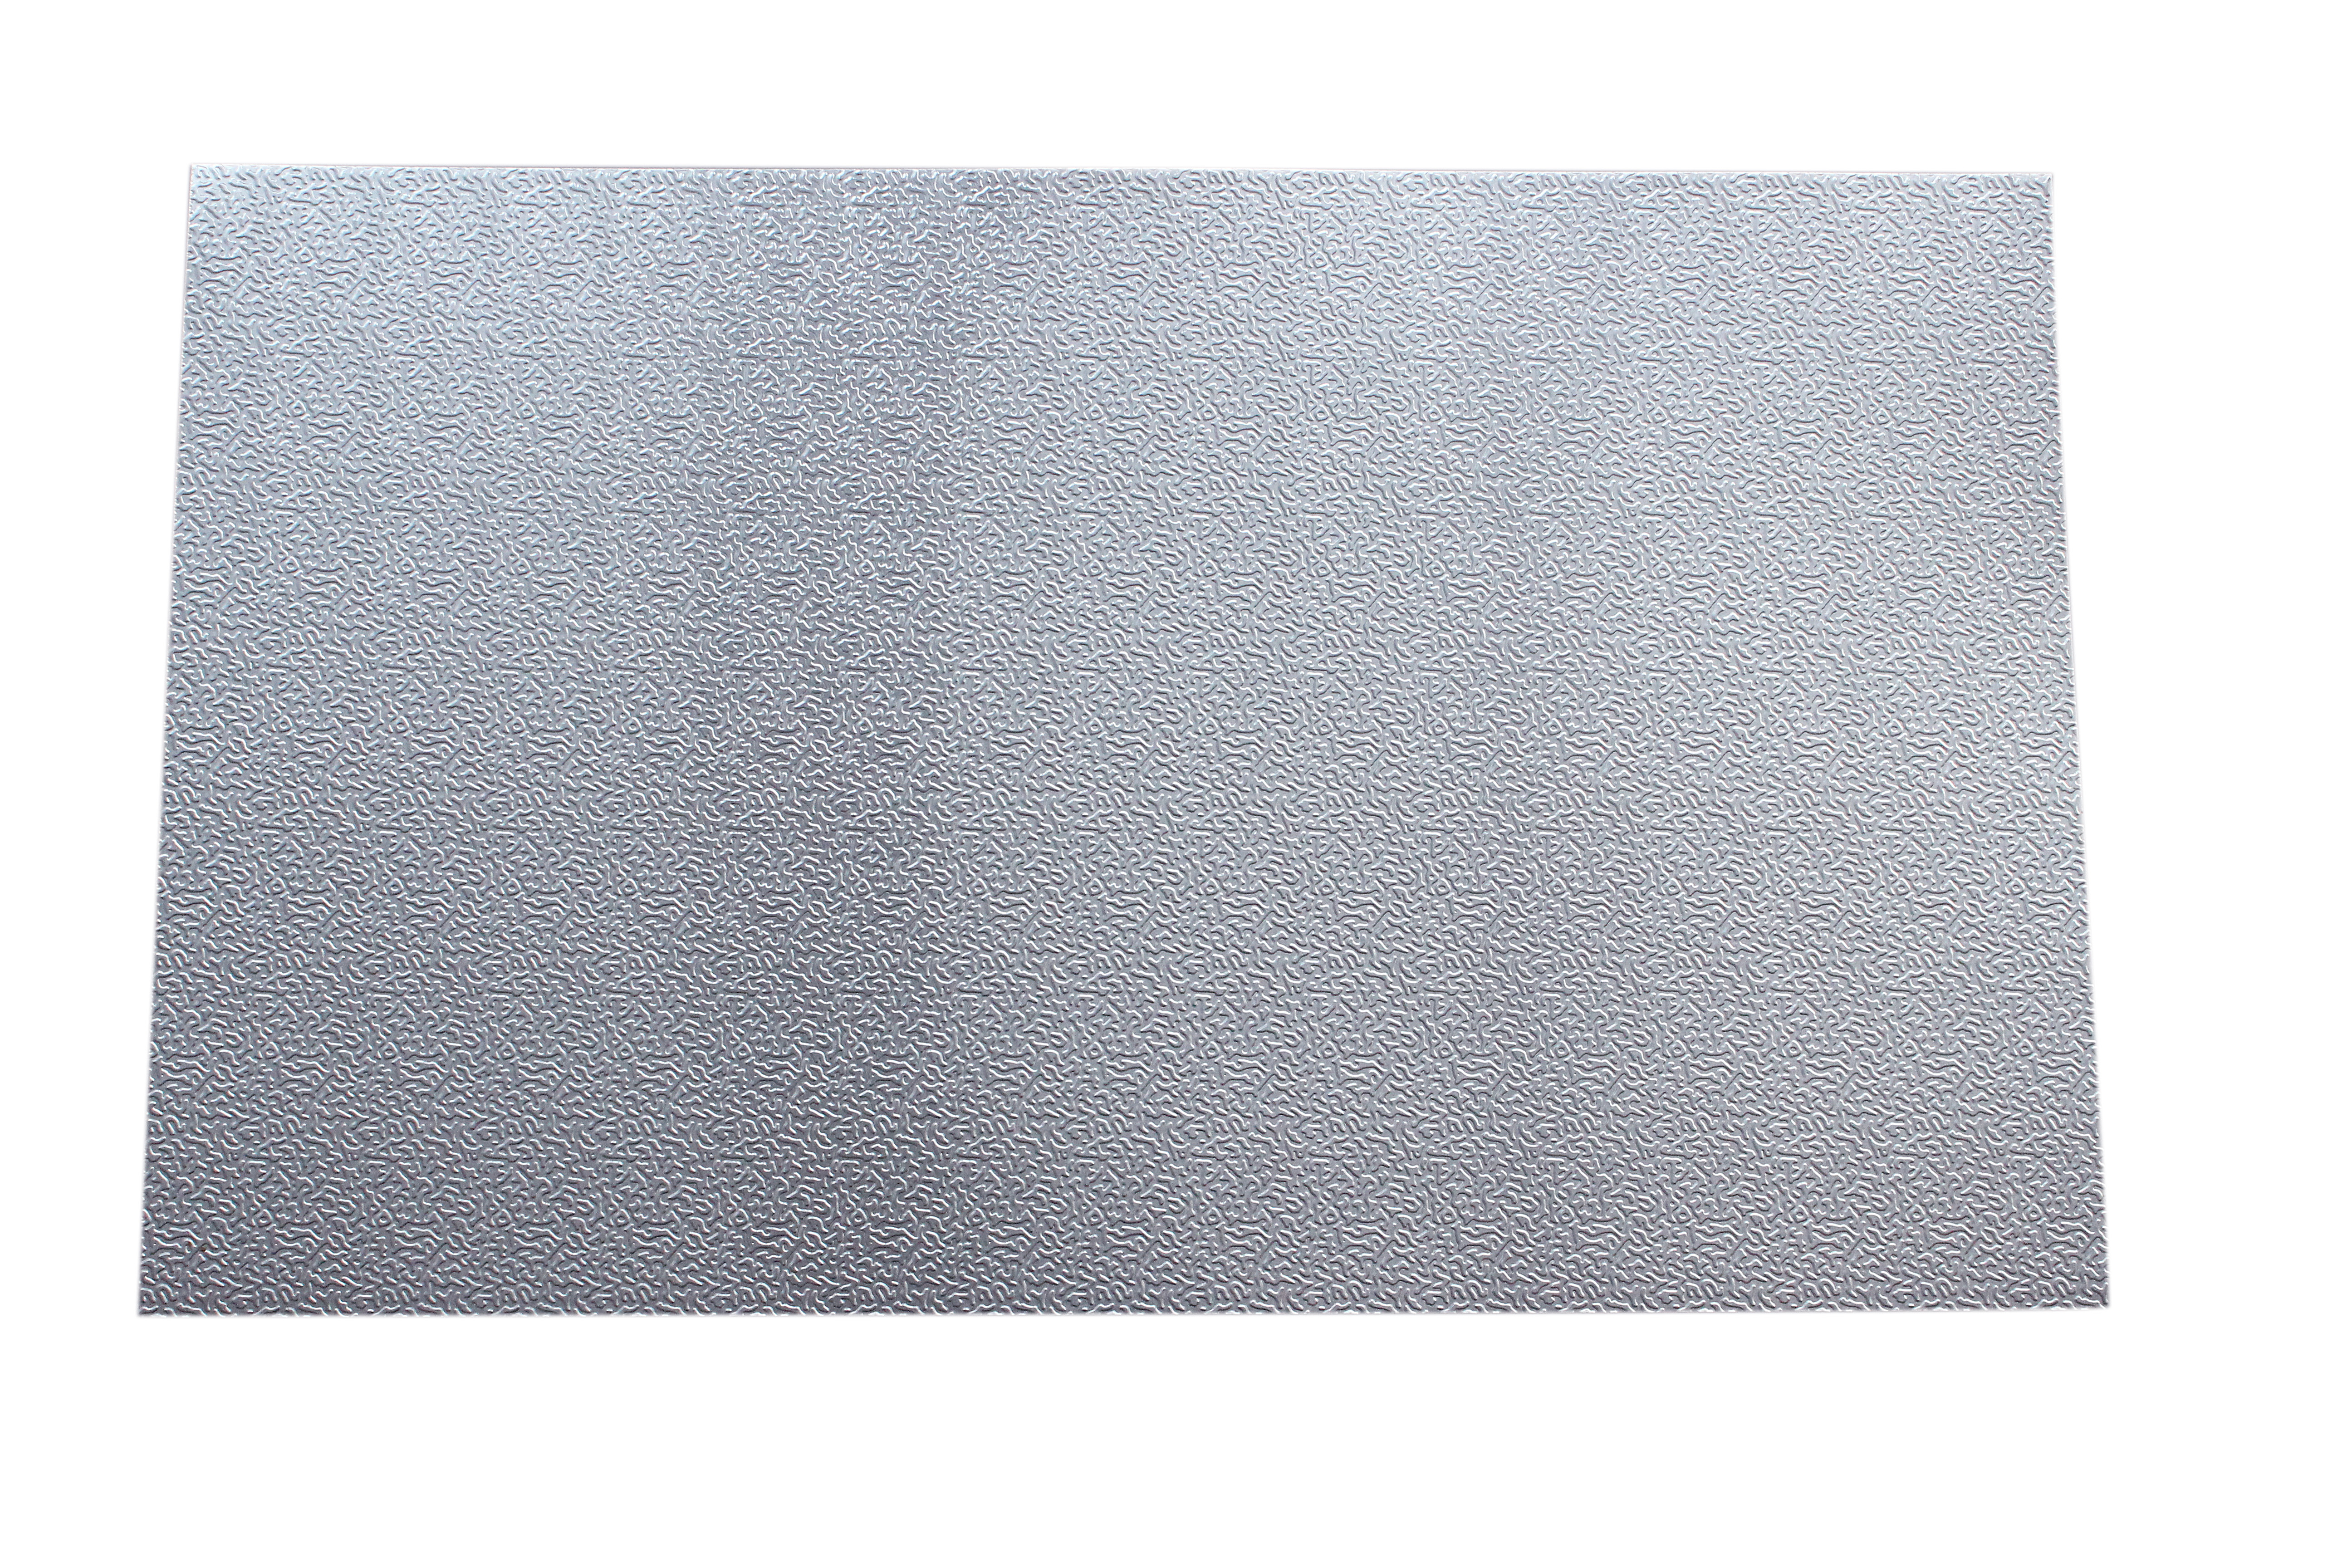 Embossed aluminum checkered plate sheet for refrigerator and freezer